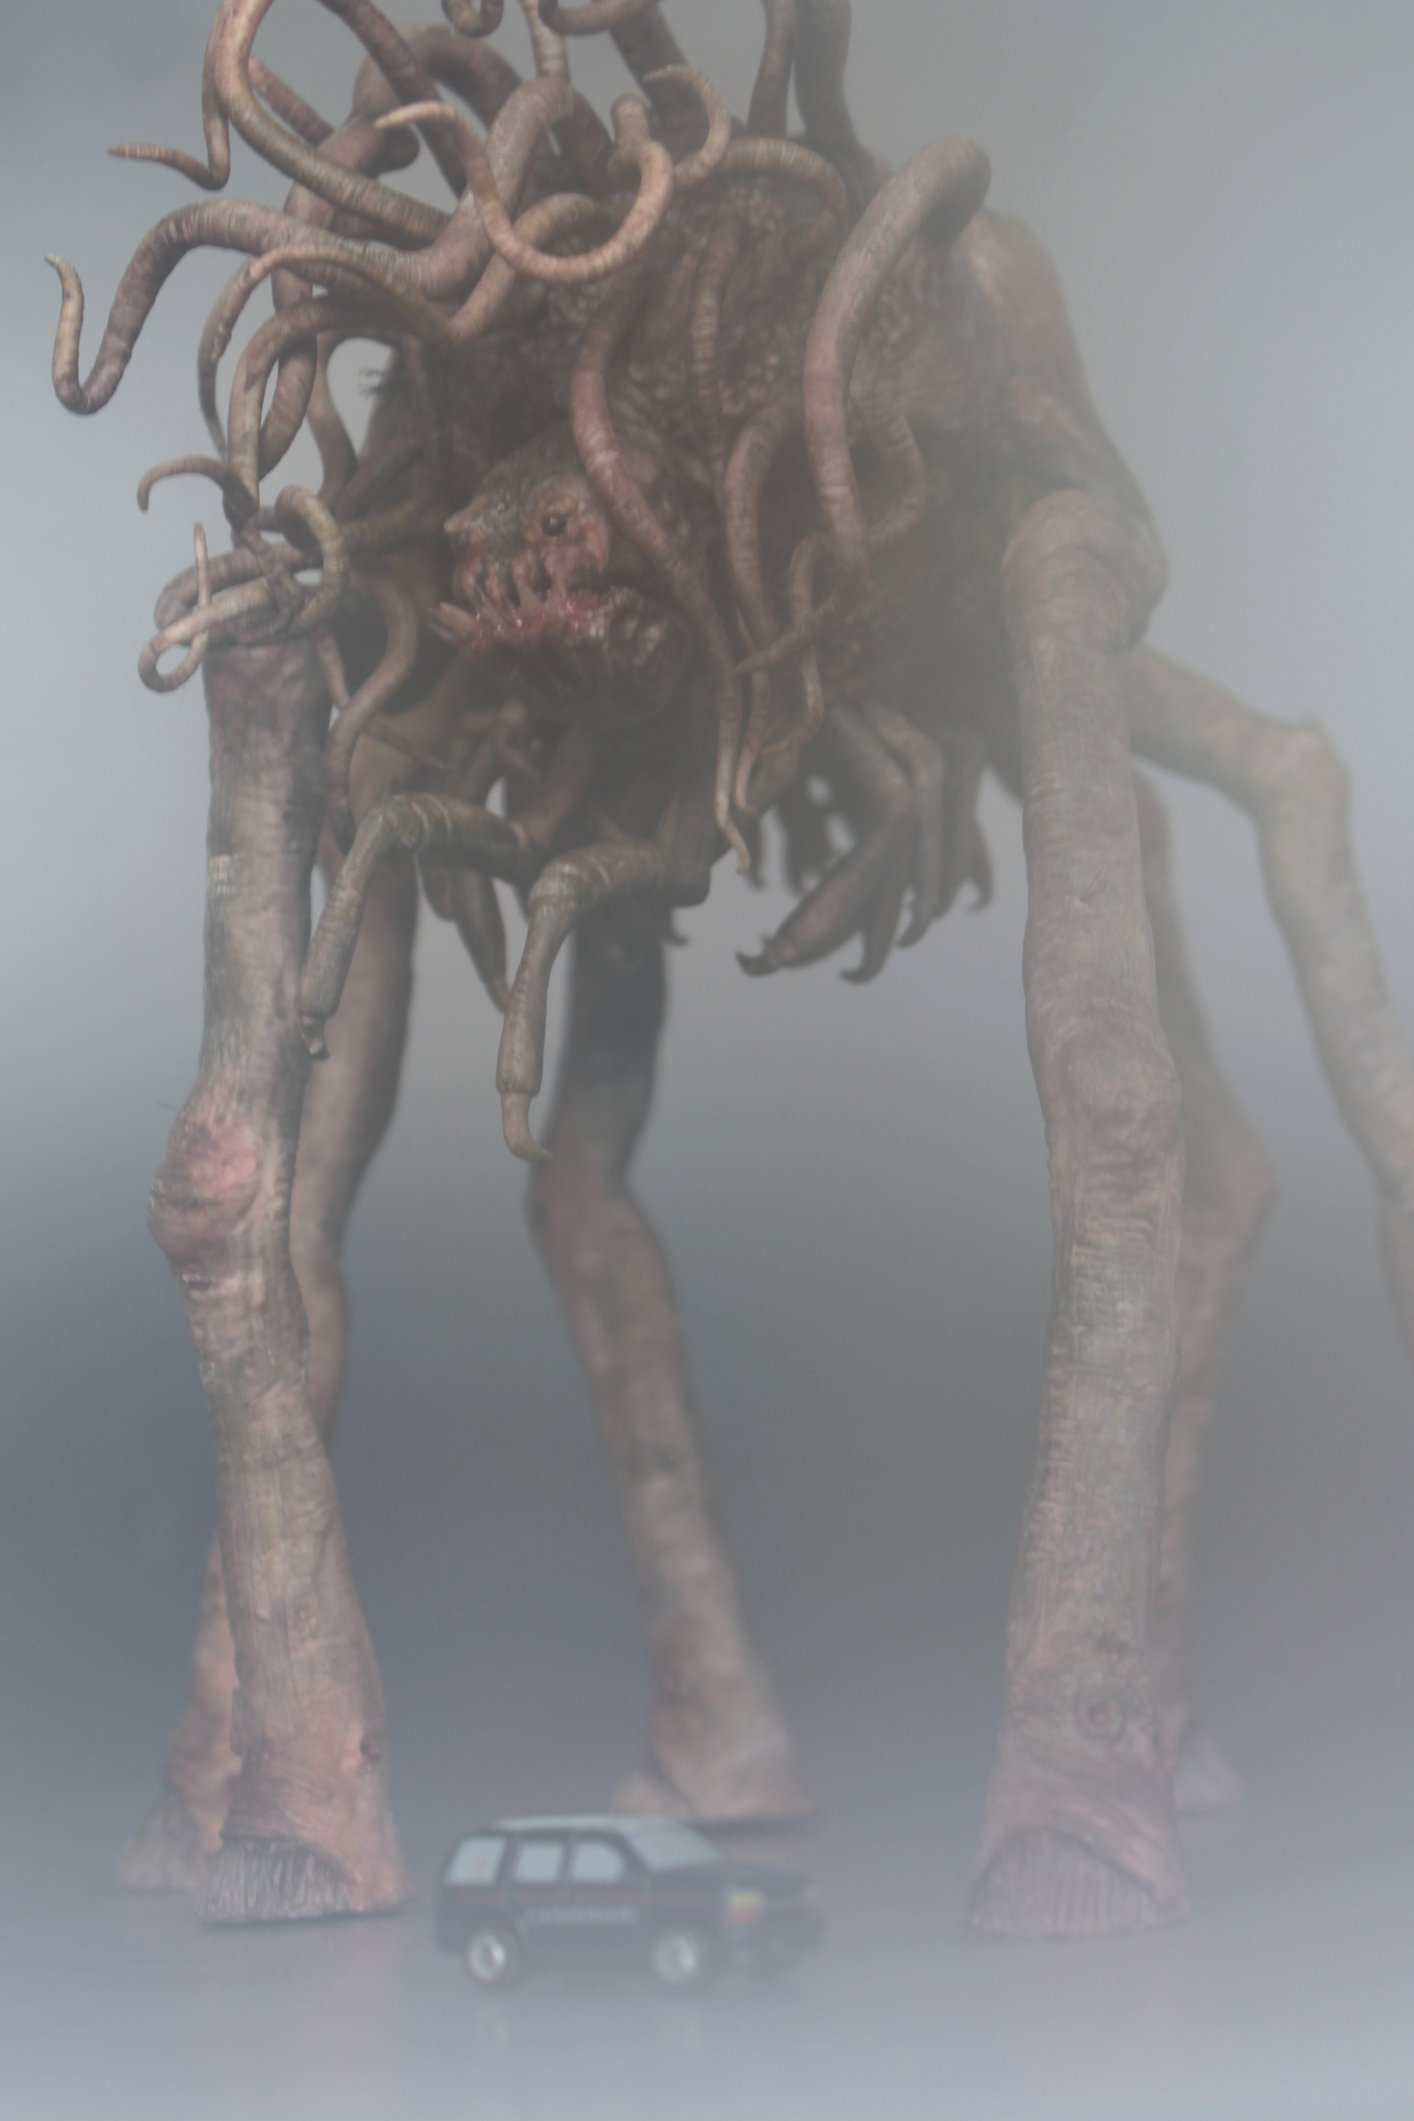 Behemot The Mist 2008 Di Stephen King Frank Darabont H P Lovecraft Inspired Monster Stan Winston School Of Character Arts Forums